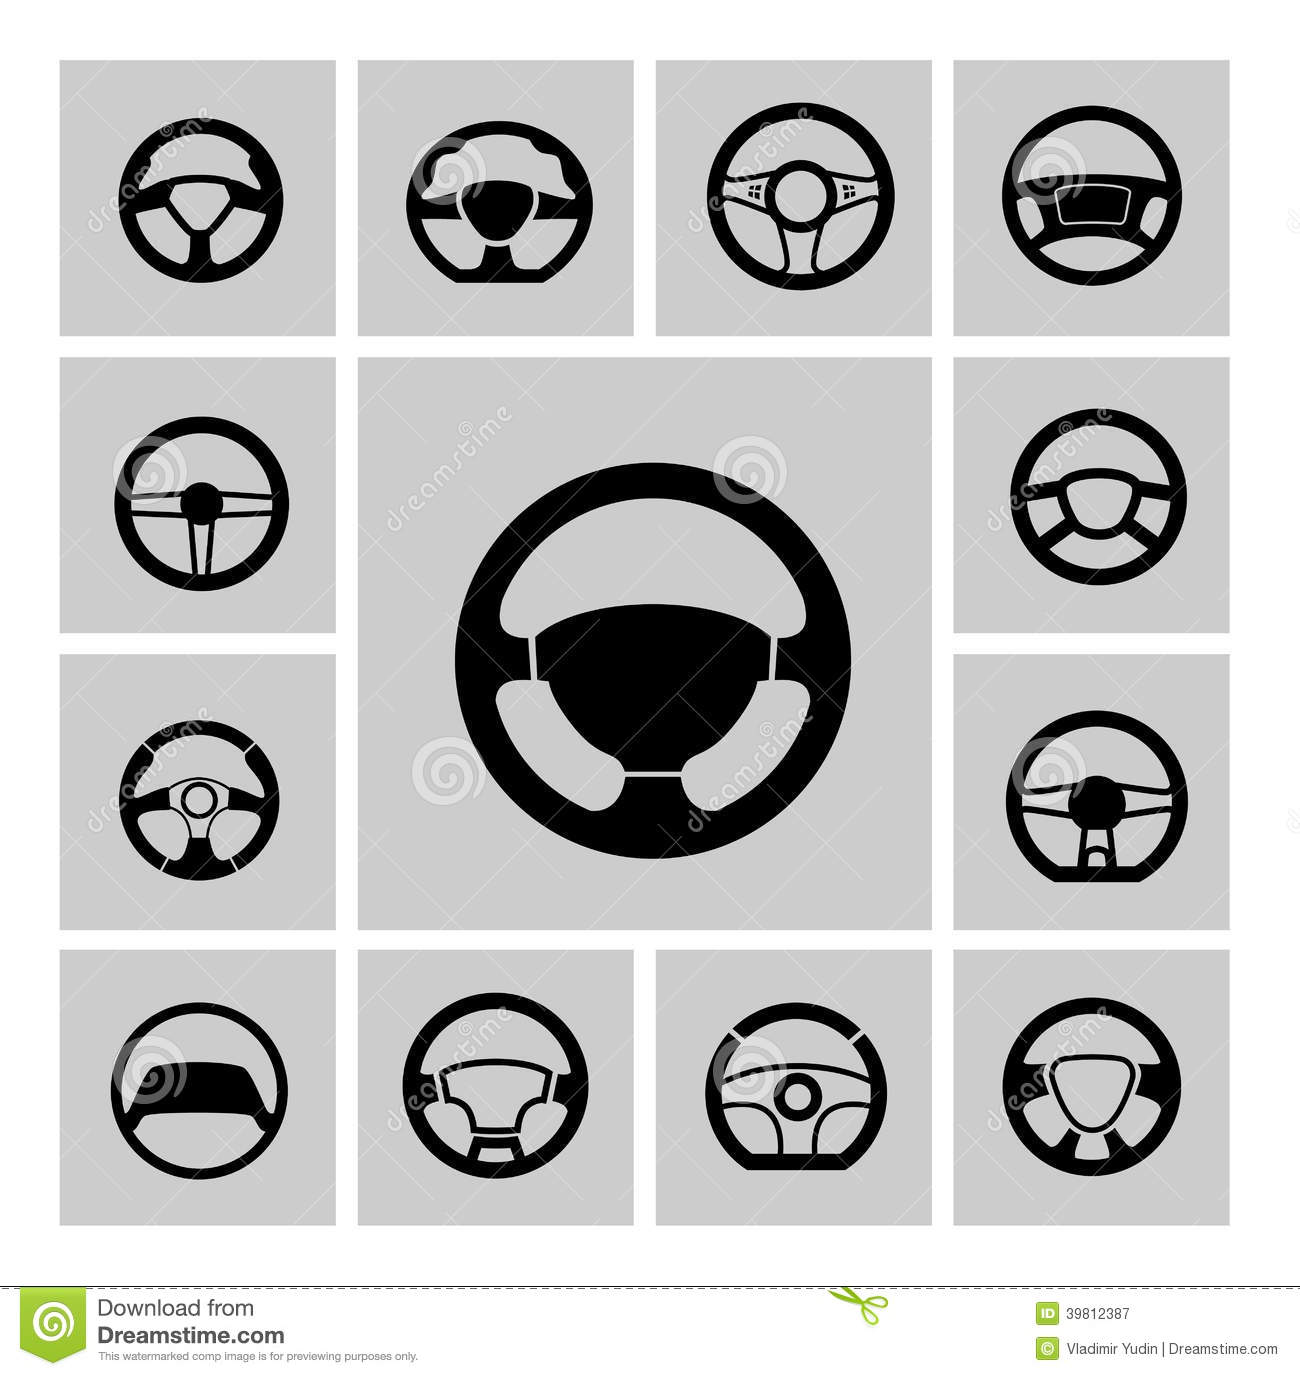 steering wheel stock vector illustration of steering 39812387 dreamstime com